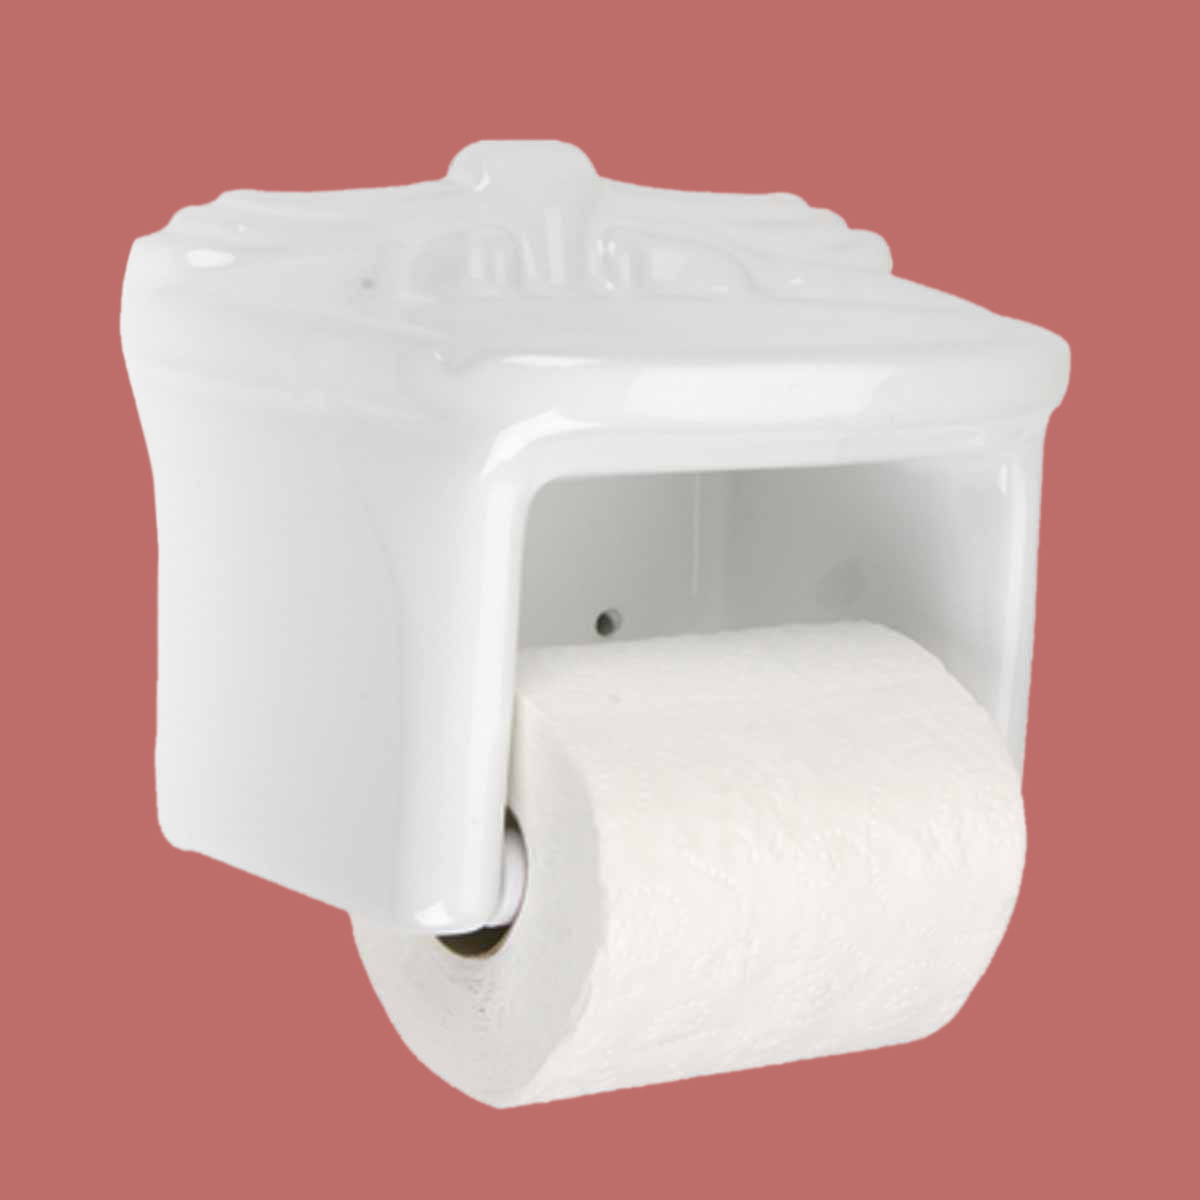 toilet tissue paper holder white ceramic porcelain